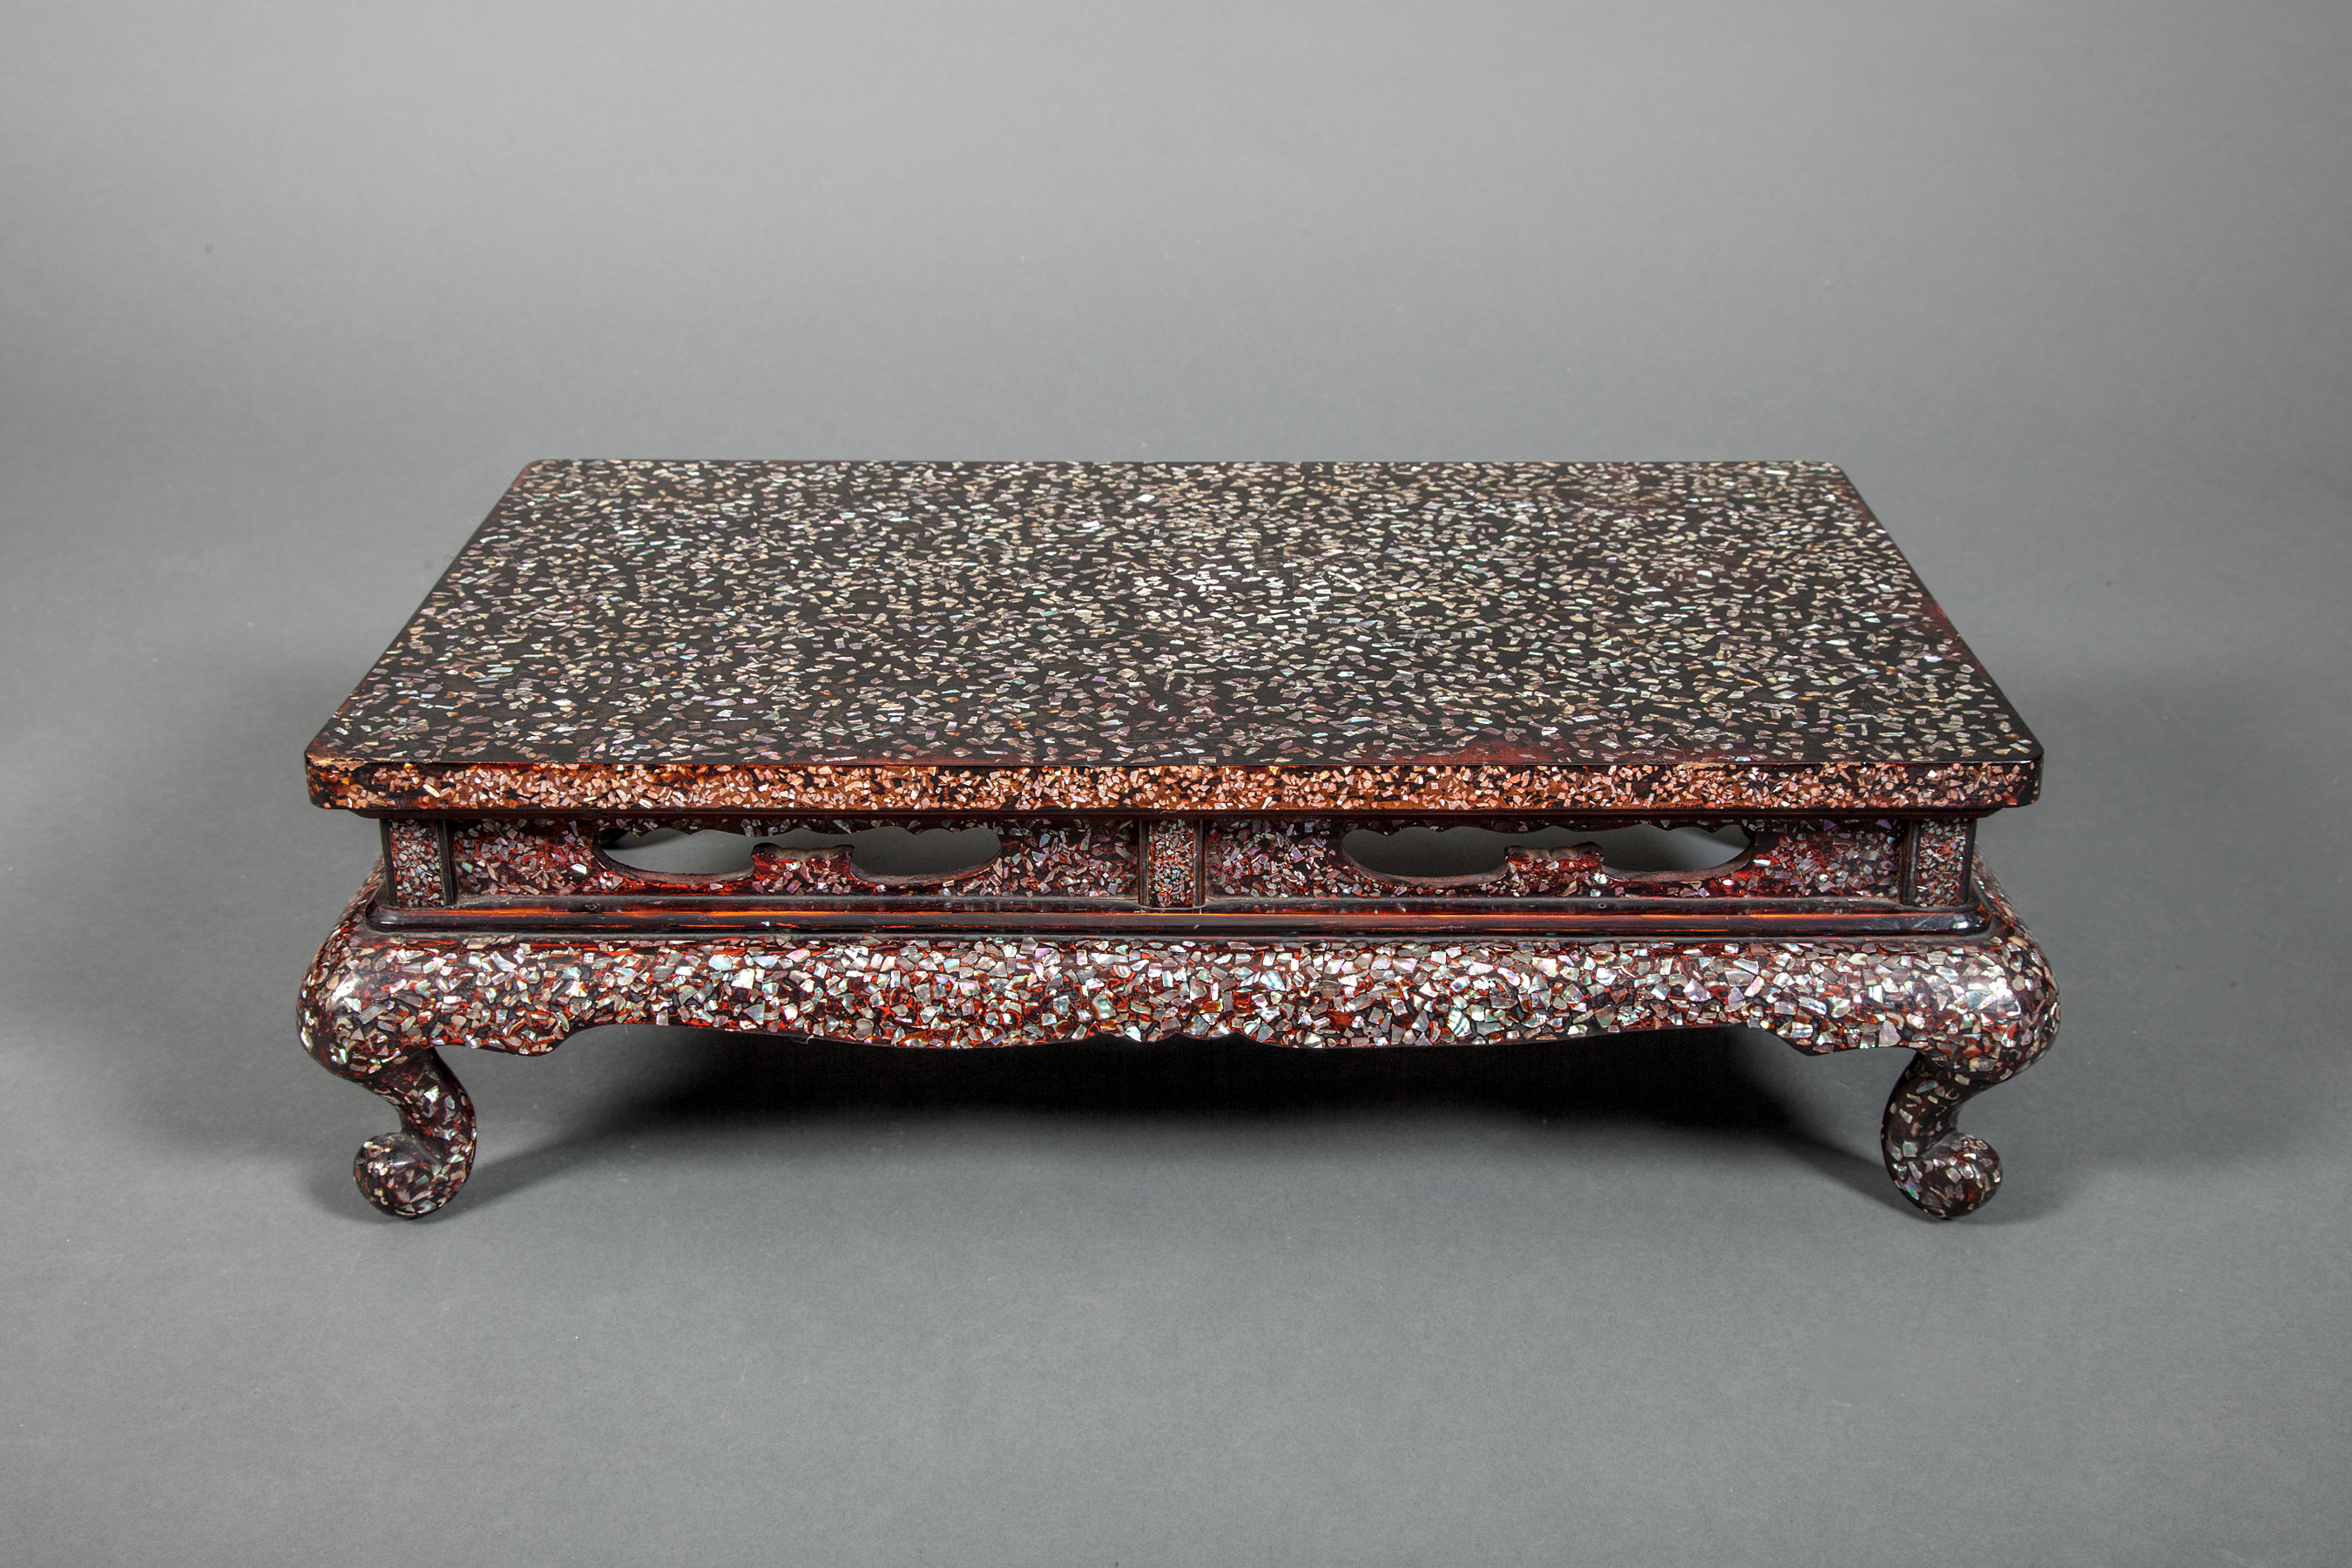 Japanese Lacquered Wood Table